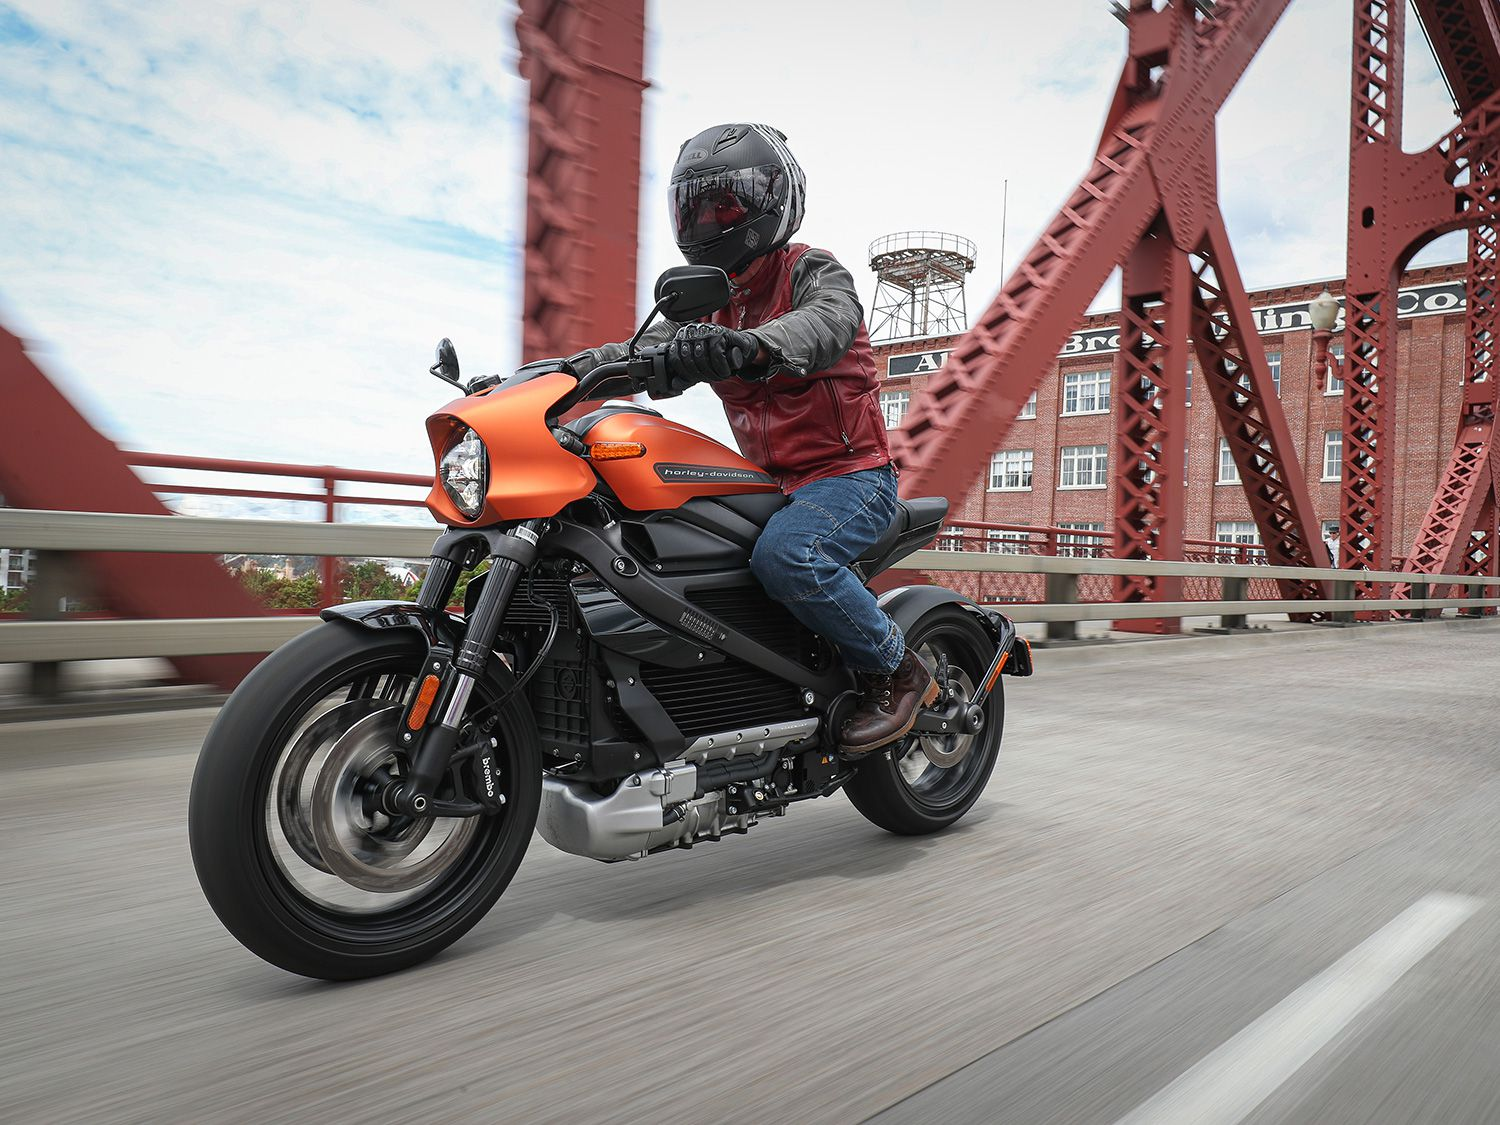 Enjoyable 2020 Harley Davidson Livewire First Ride Cycle World Caraccident5 Cool Chair Designs And Ideas Caraccident5Info